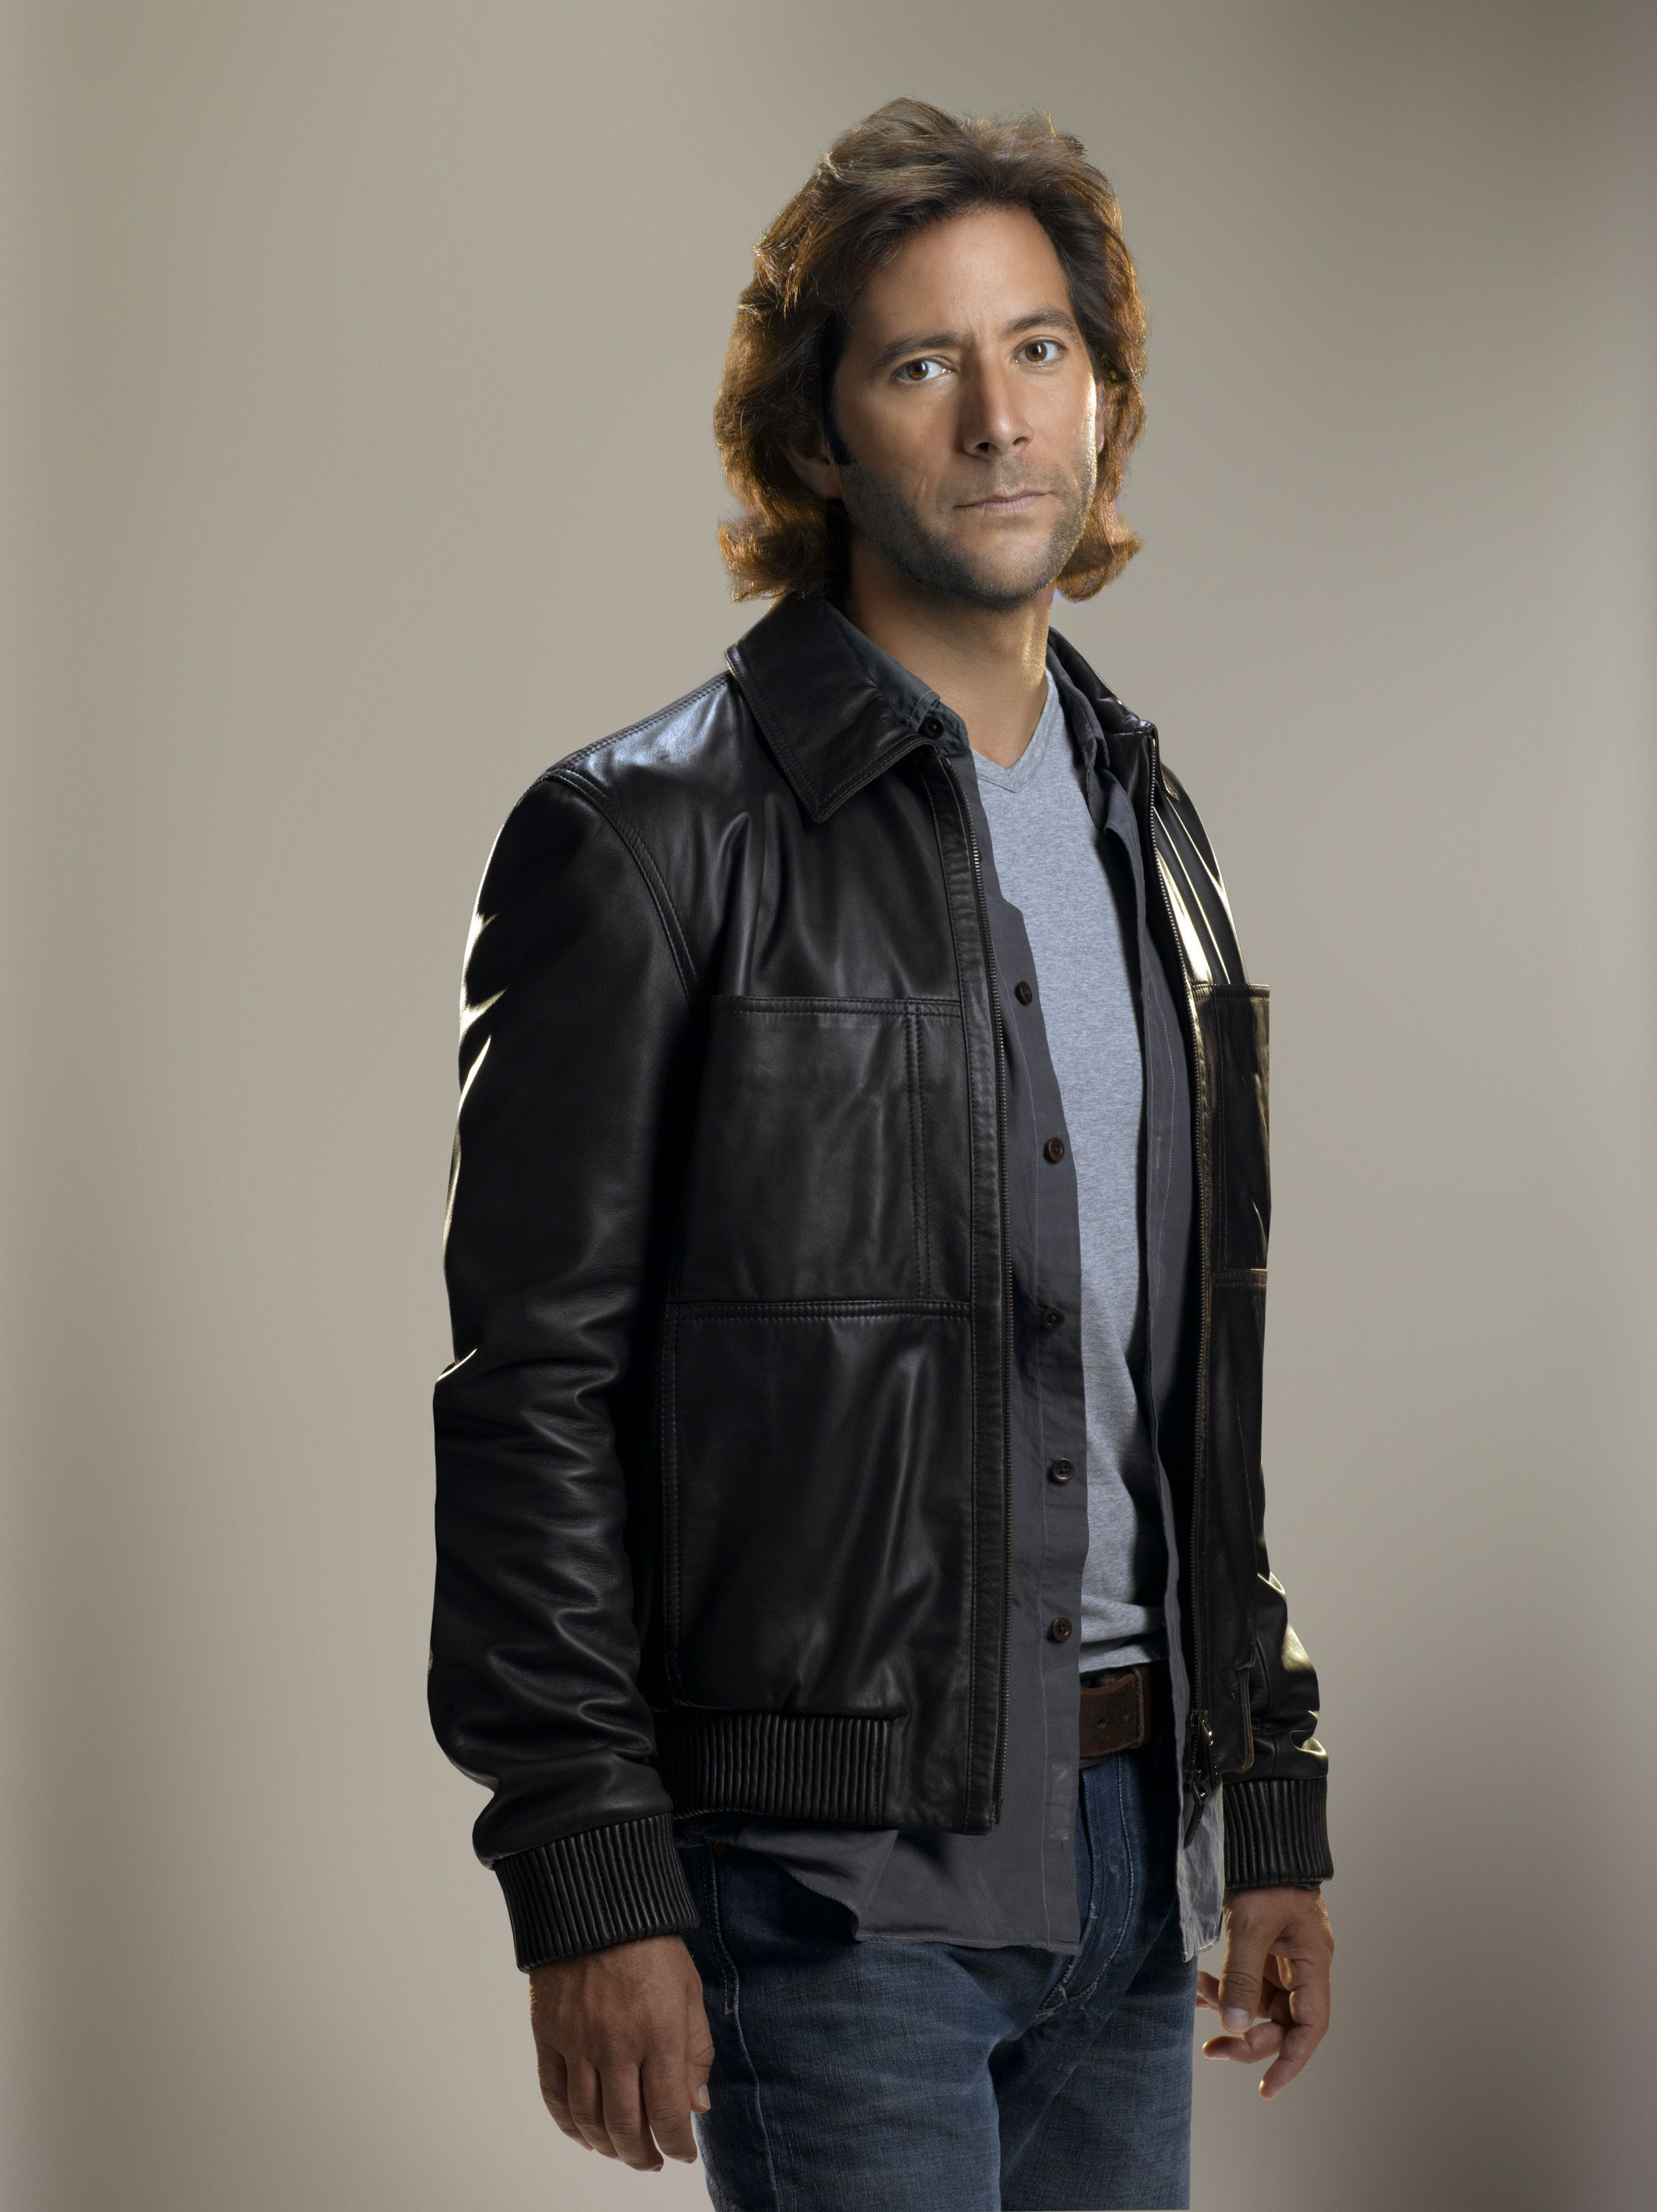 """Lost S5 Henry Ian Cusick as """"Desmond Hume"""""""